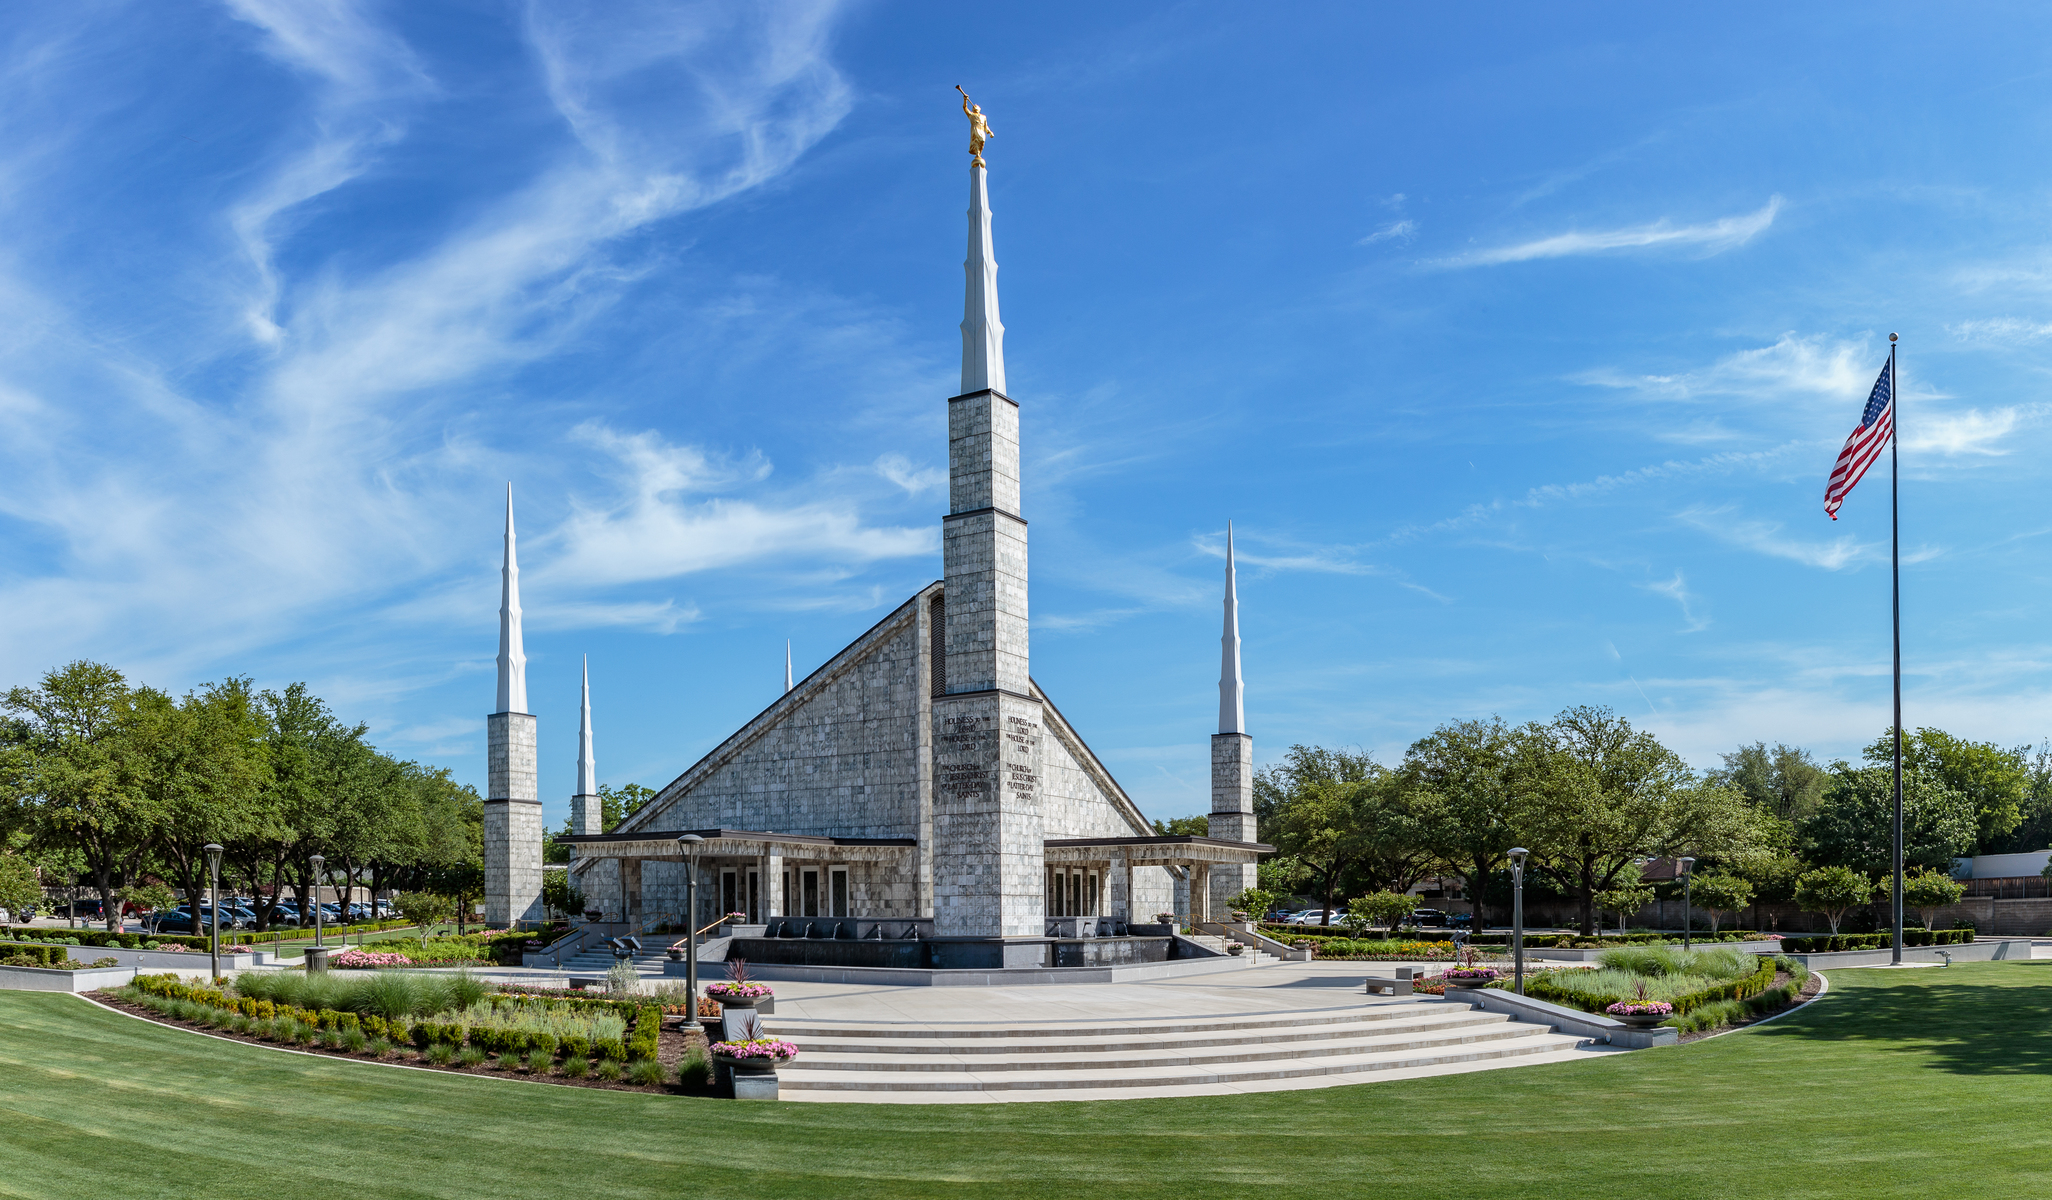 Dallas Texas Latter-day Temple Model The Church of Jesus Christ of Latter-day Saints LDS Statue